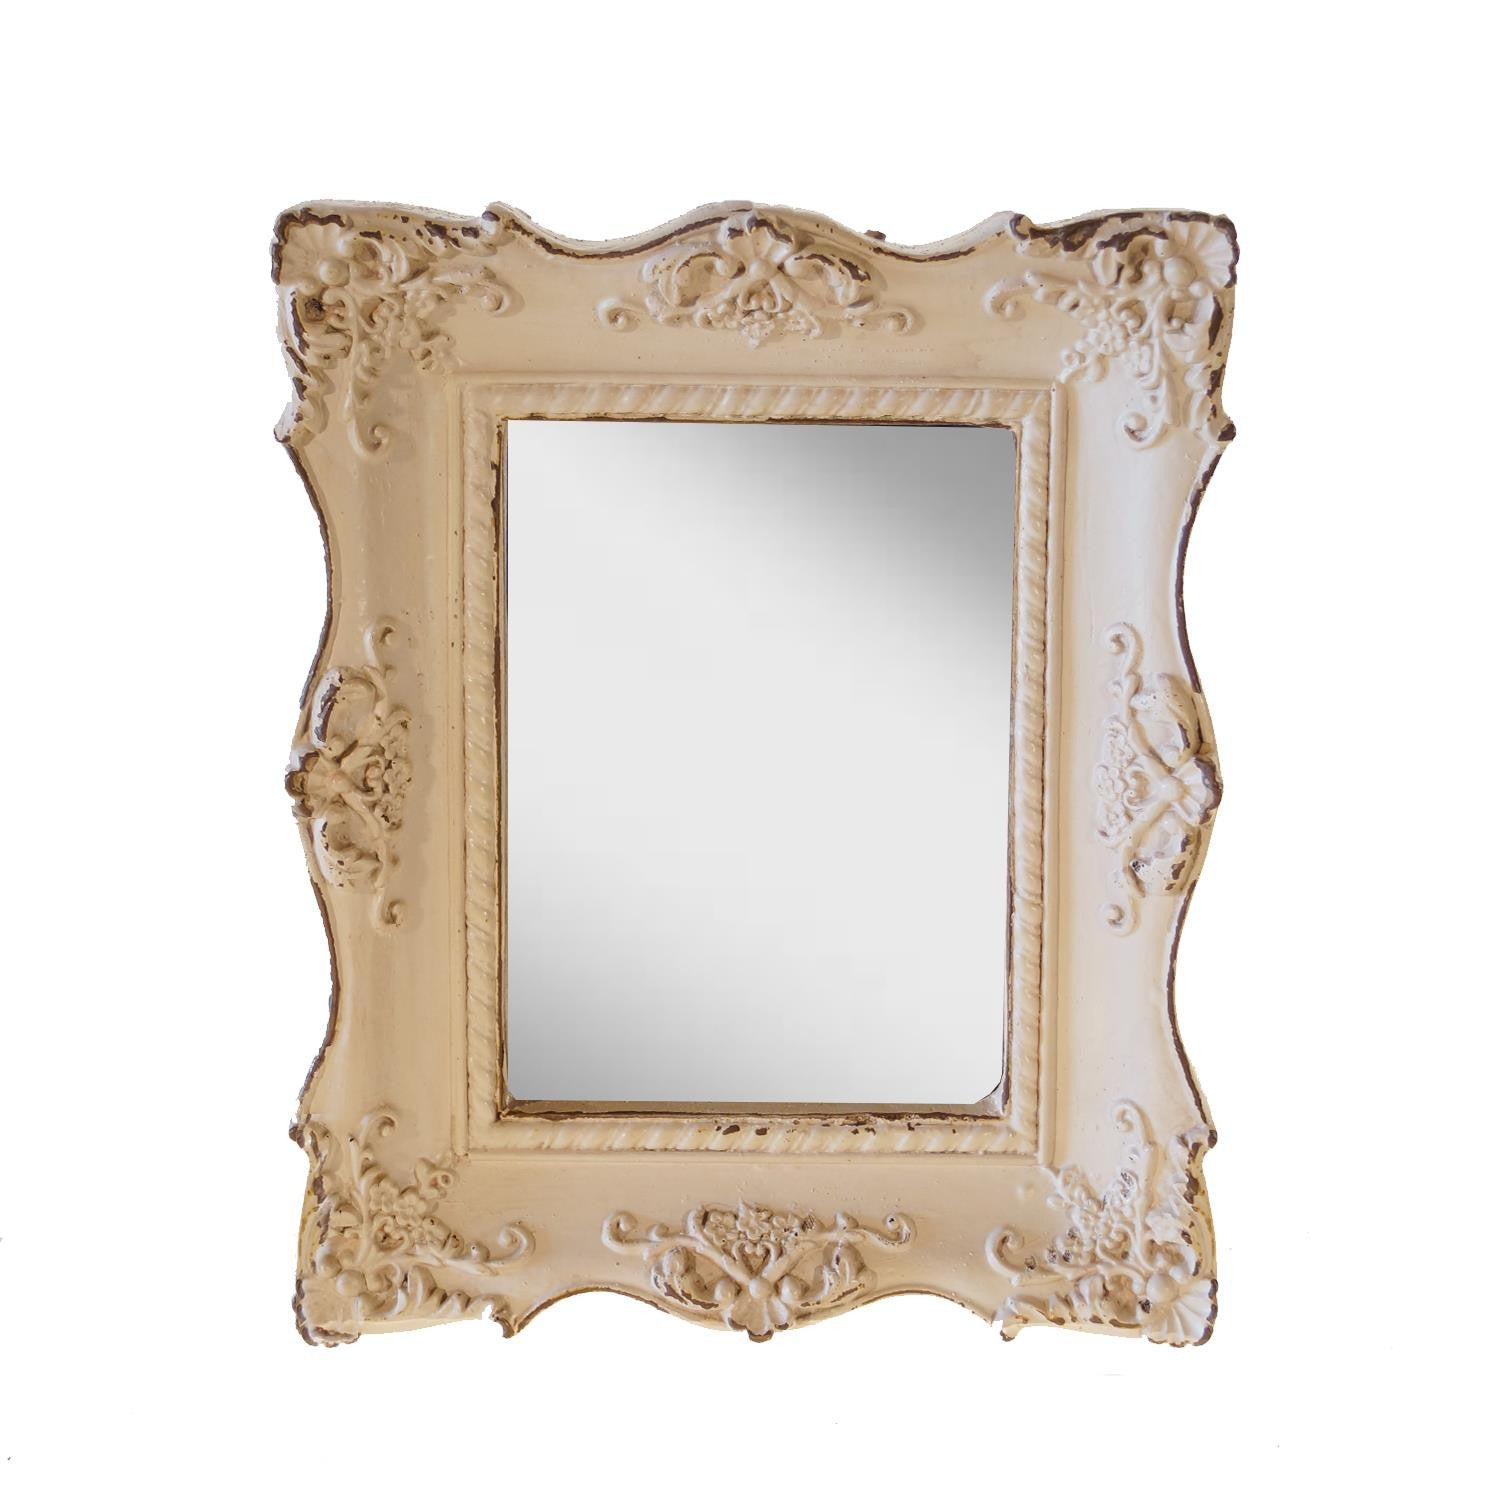 Detailed Mirror - Rustic Lane Boutique